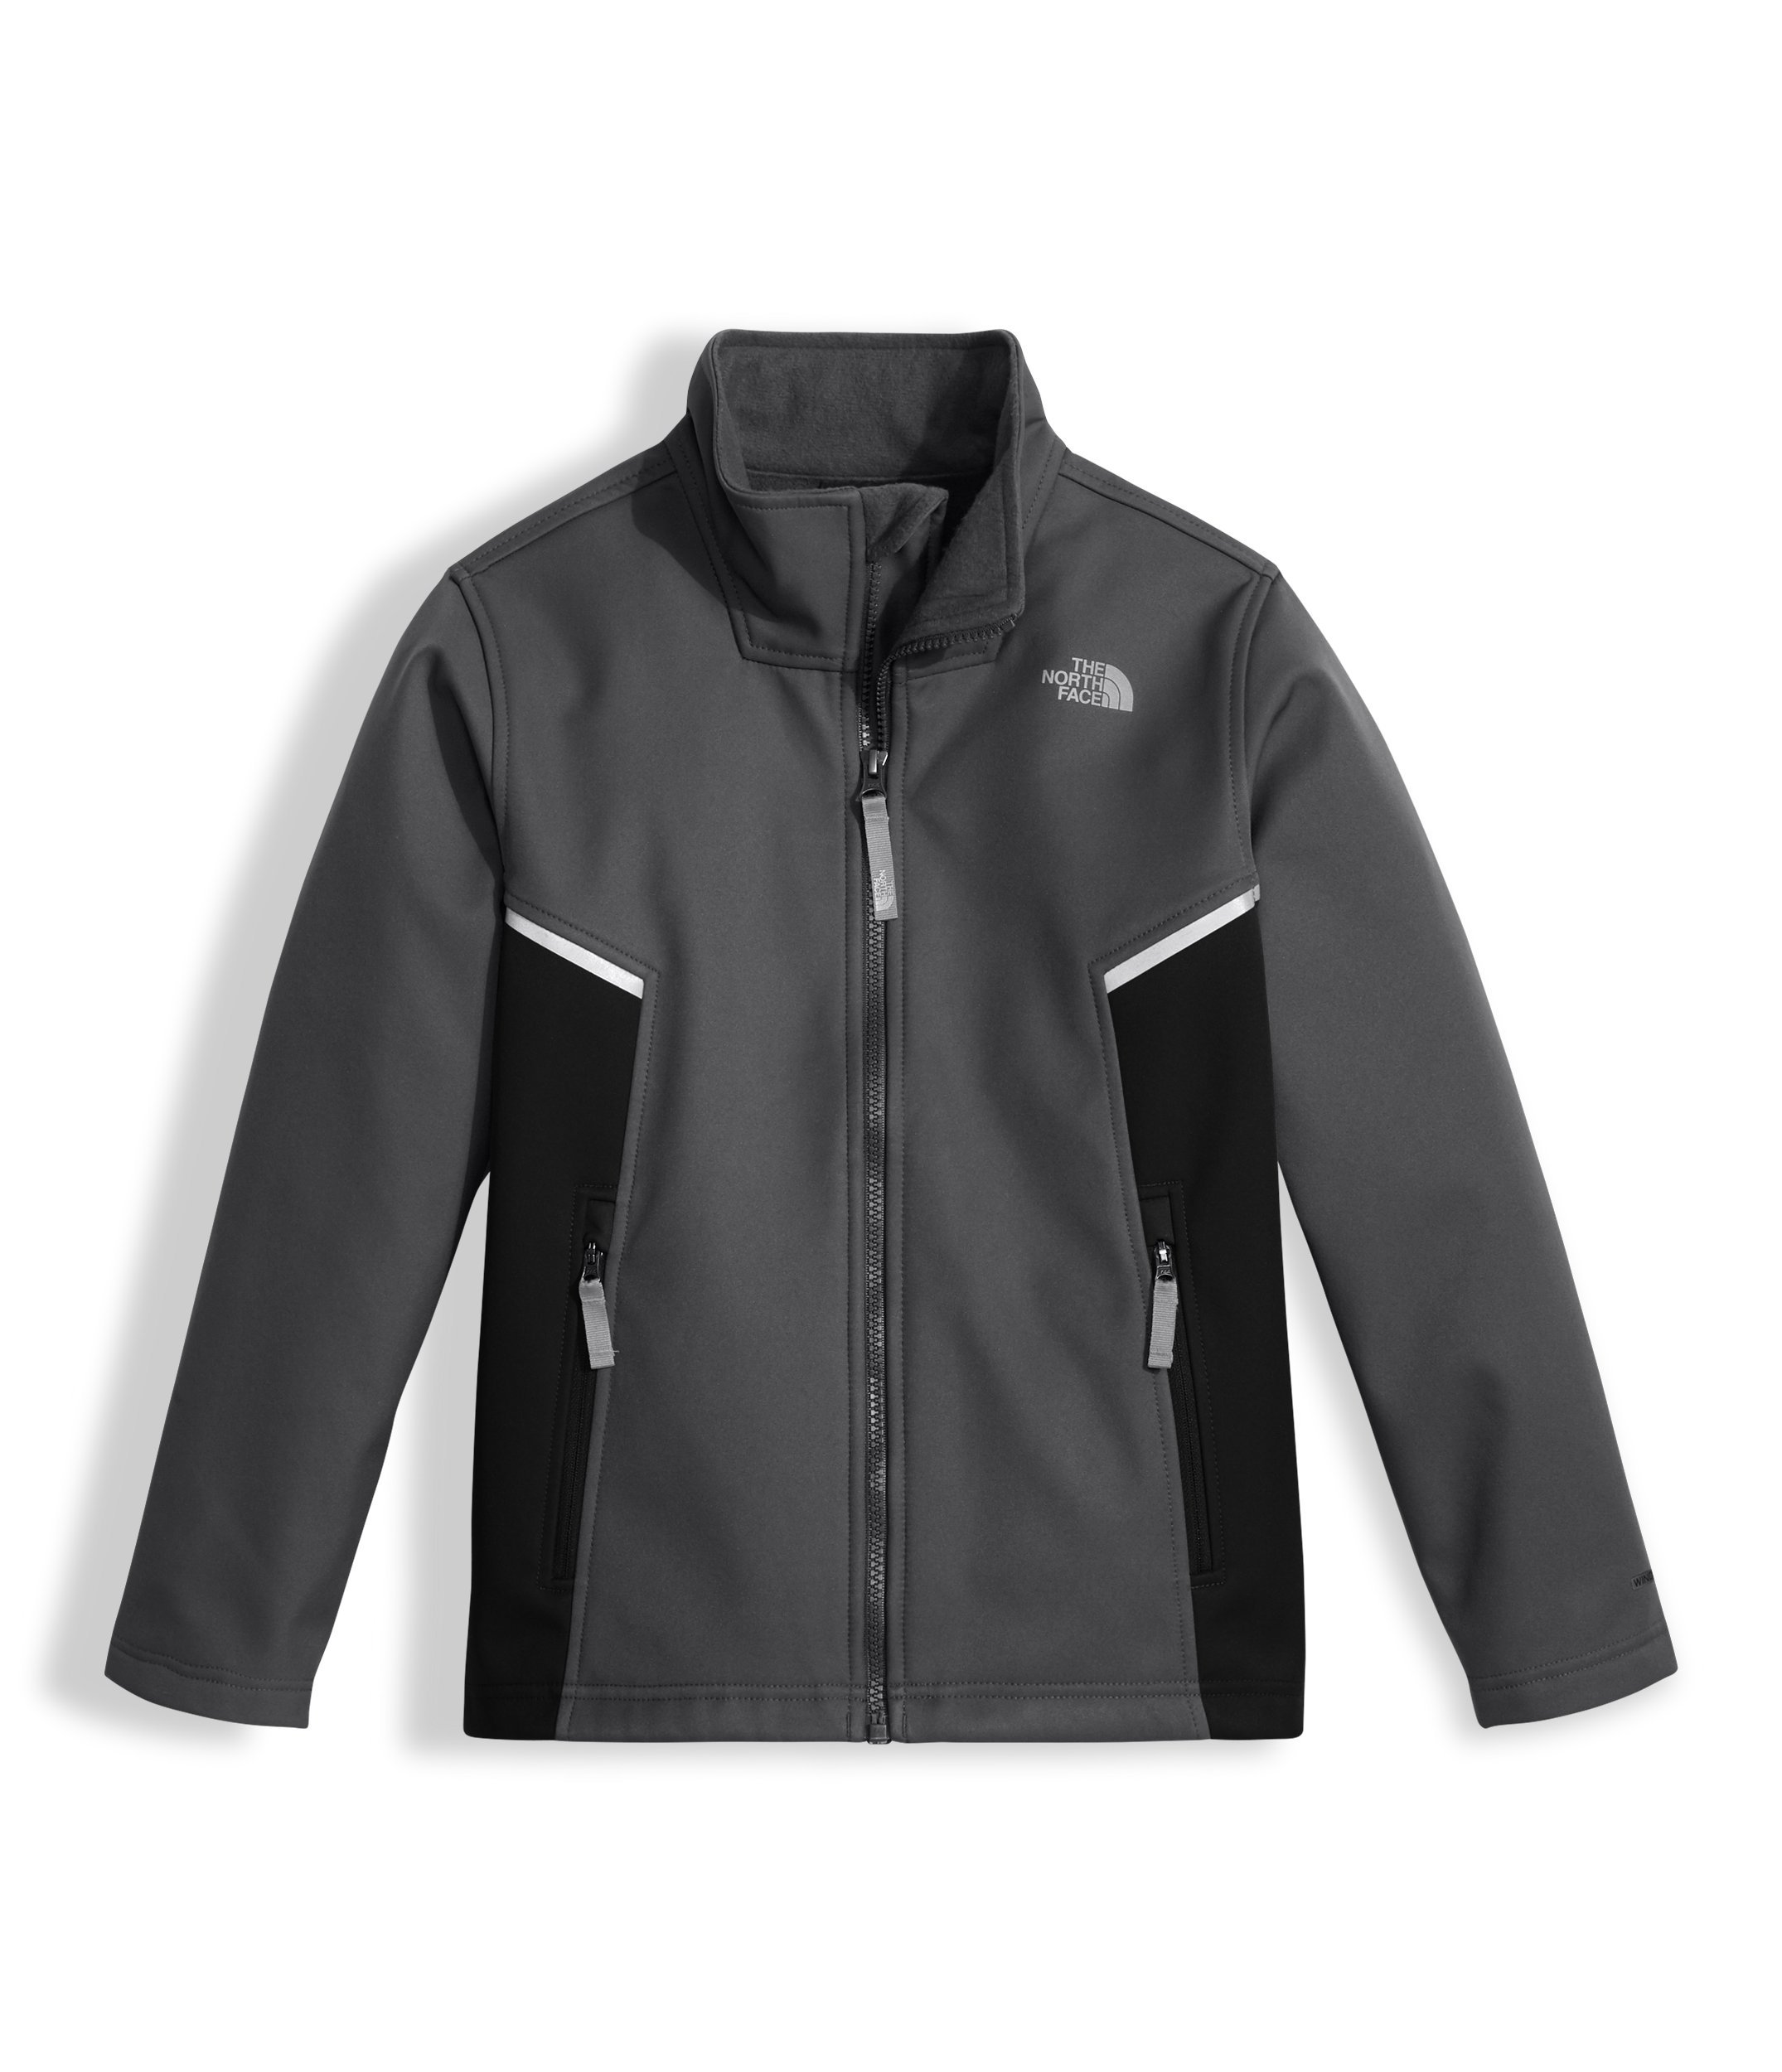 The North Face Kids Boy's Apex Bionic Jacket (Little Kids/Big Kids) Graphite Grey (Prior Season) SM (7-8 Big Kids)